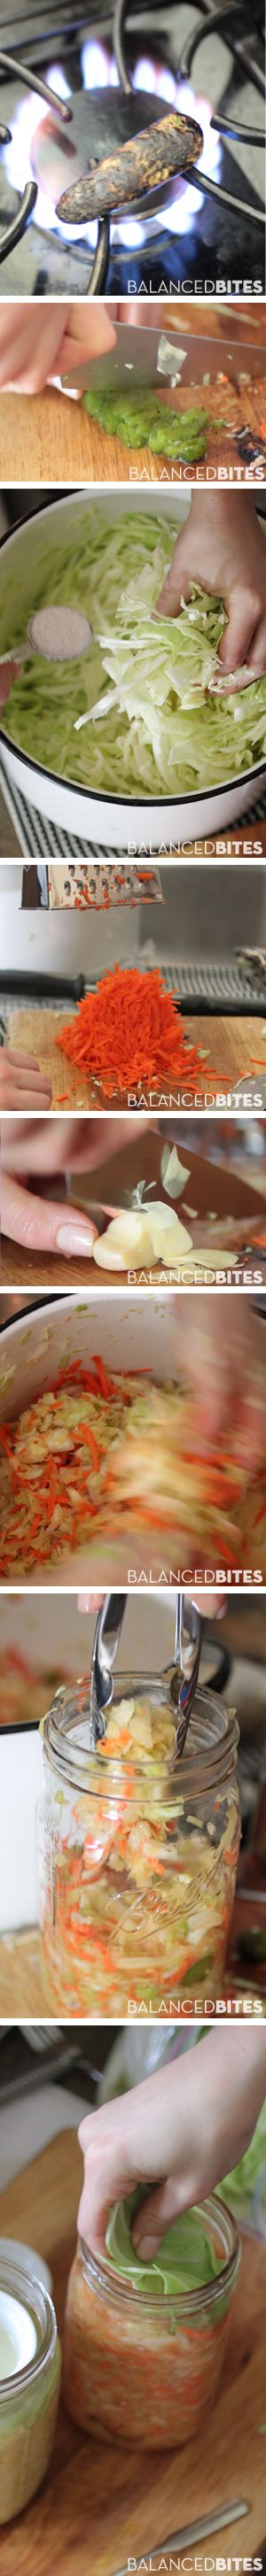 Easy Raw Sauerkraut #paleo                        This is my favorite way to make raw sauerkraut, but you can certainly follow some of the variations listed for different flavors or try your hand at a new flavor of your own. This recipe is inspired by the raw sauerkraut I fell in love with from Farmhouse Culture brand kraut, which I highly recommend trying if you can get your hands on it.  #balancedbites #kraut #fermented